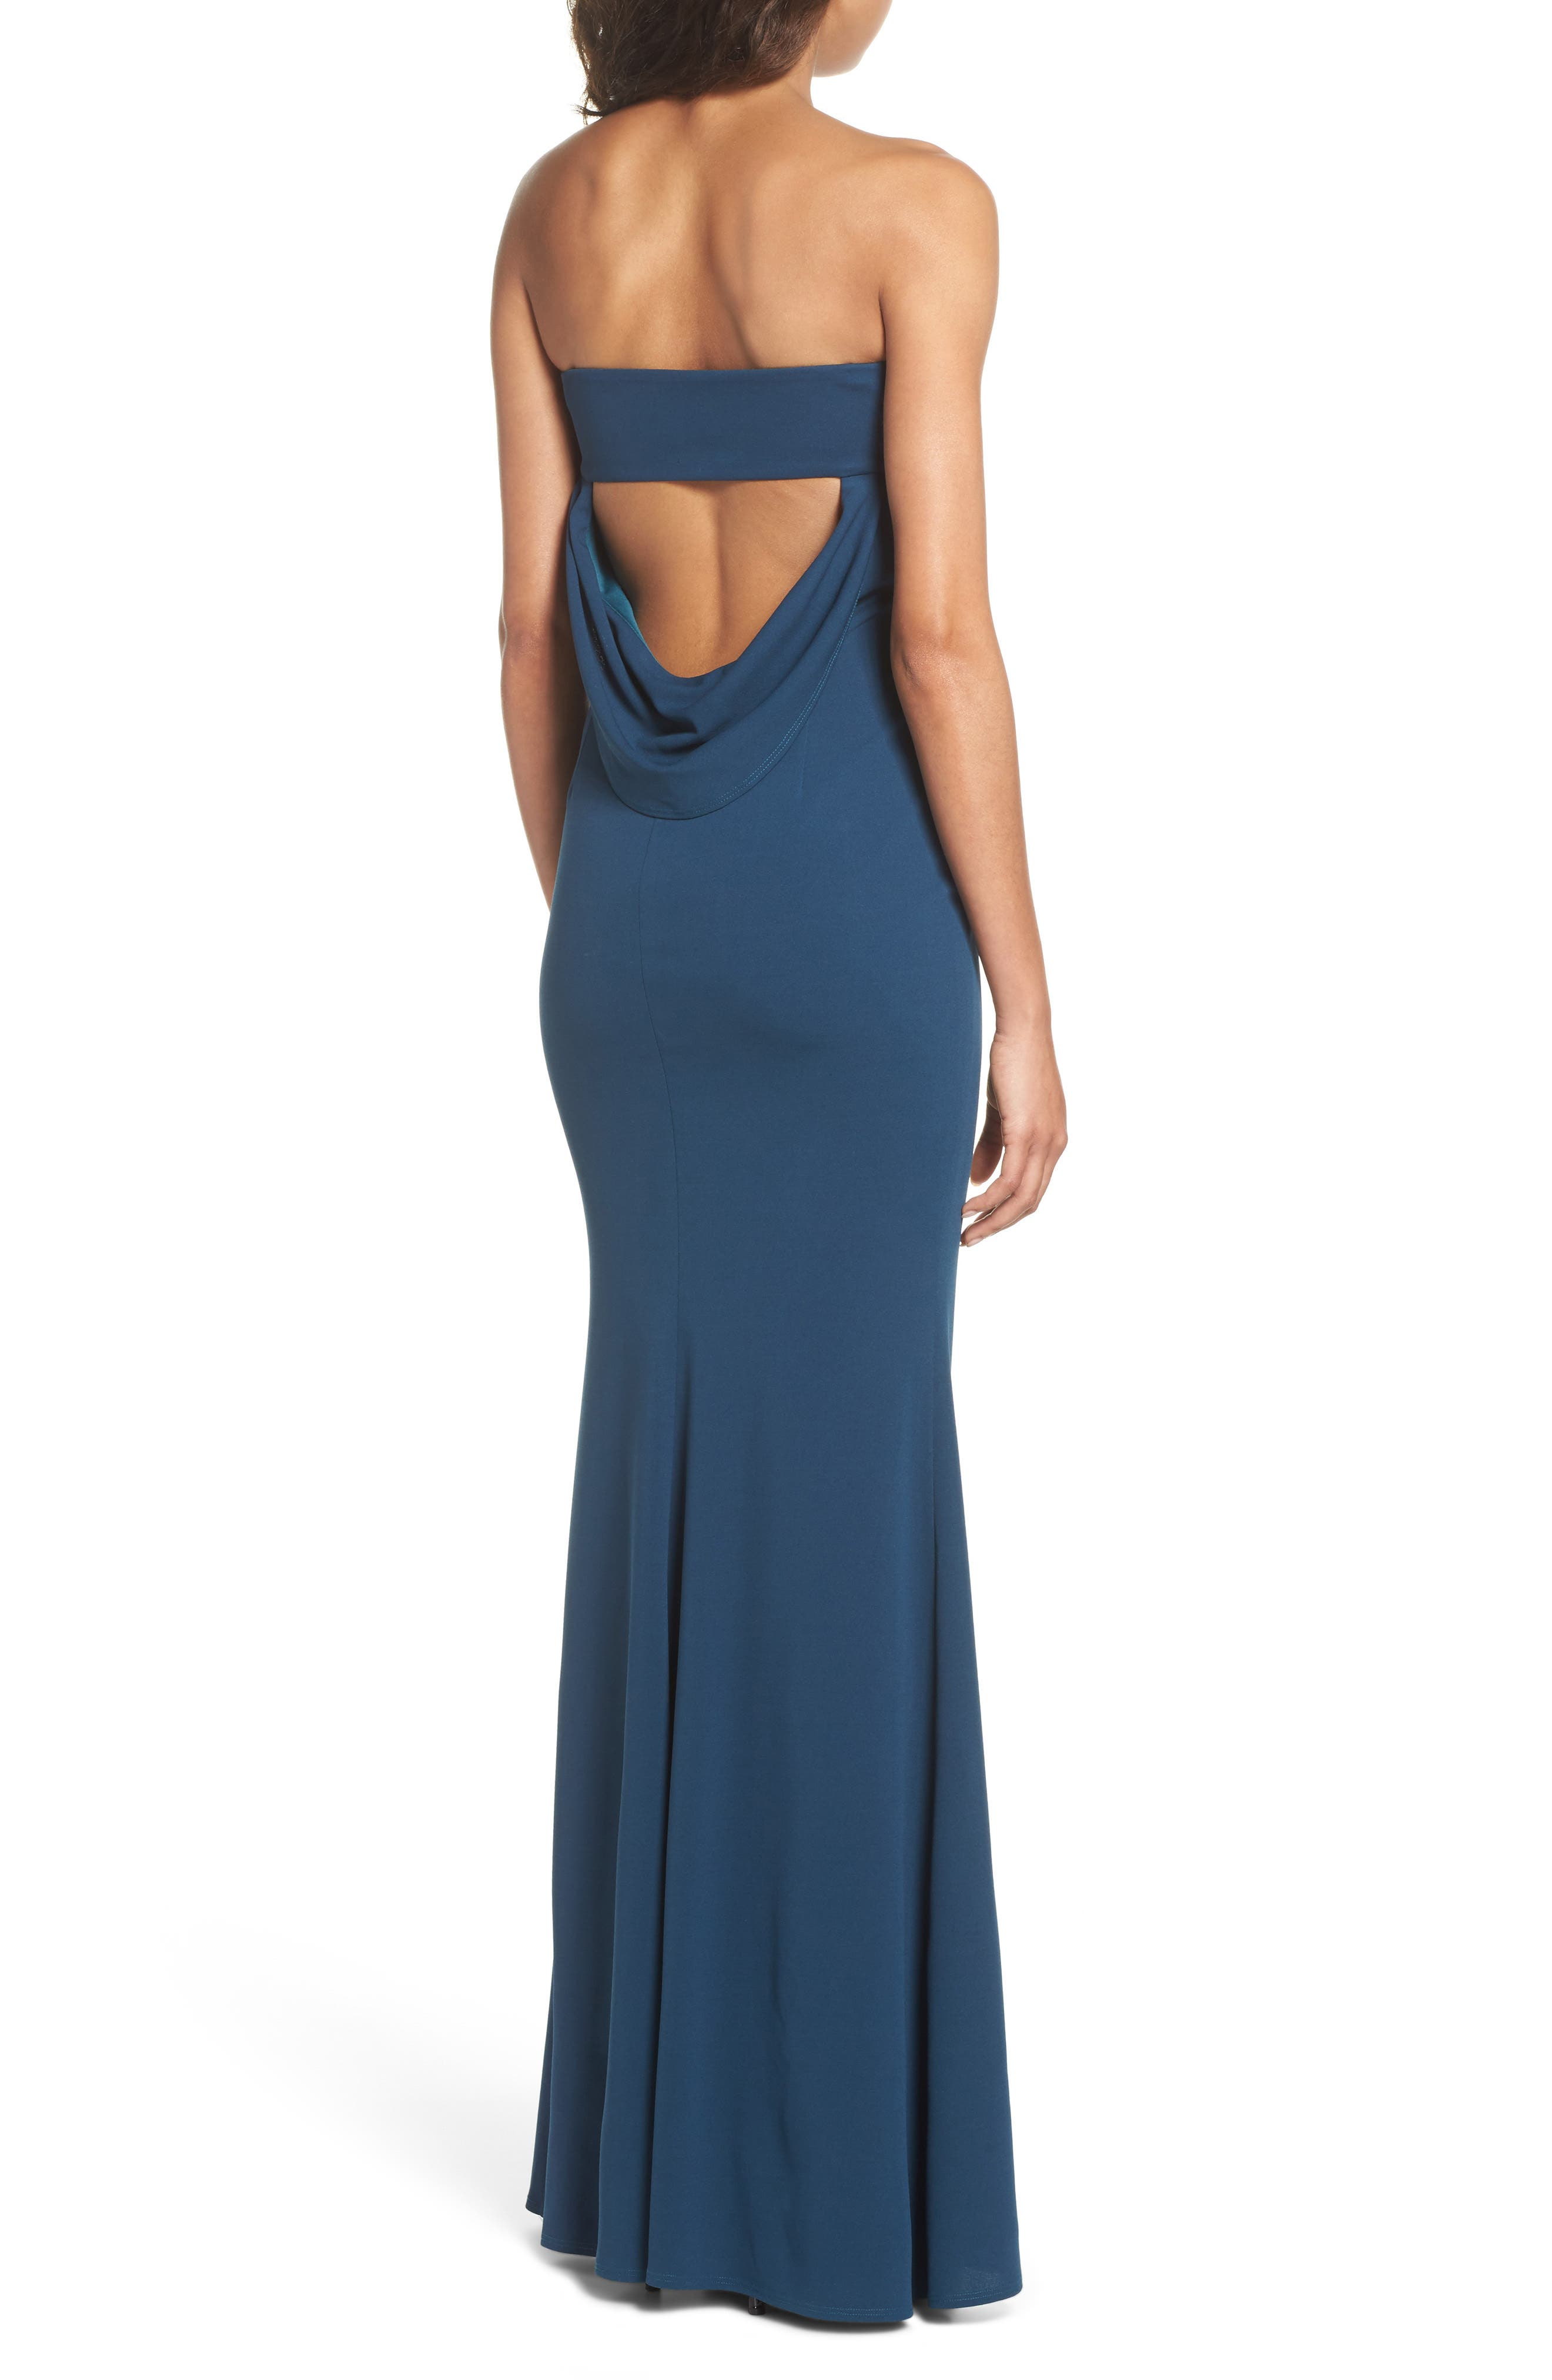 Mary Kate Strapless Cutout Back Gown,                             Alternate thumbnail 2, color,                             TEAL